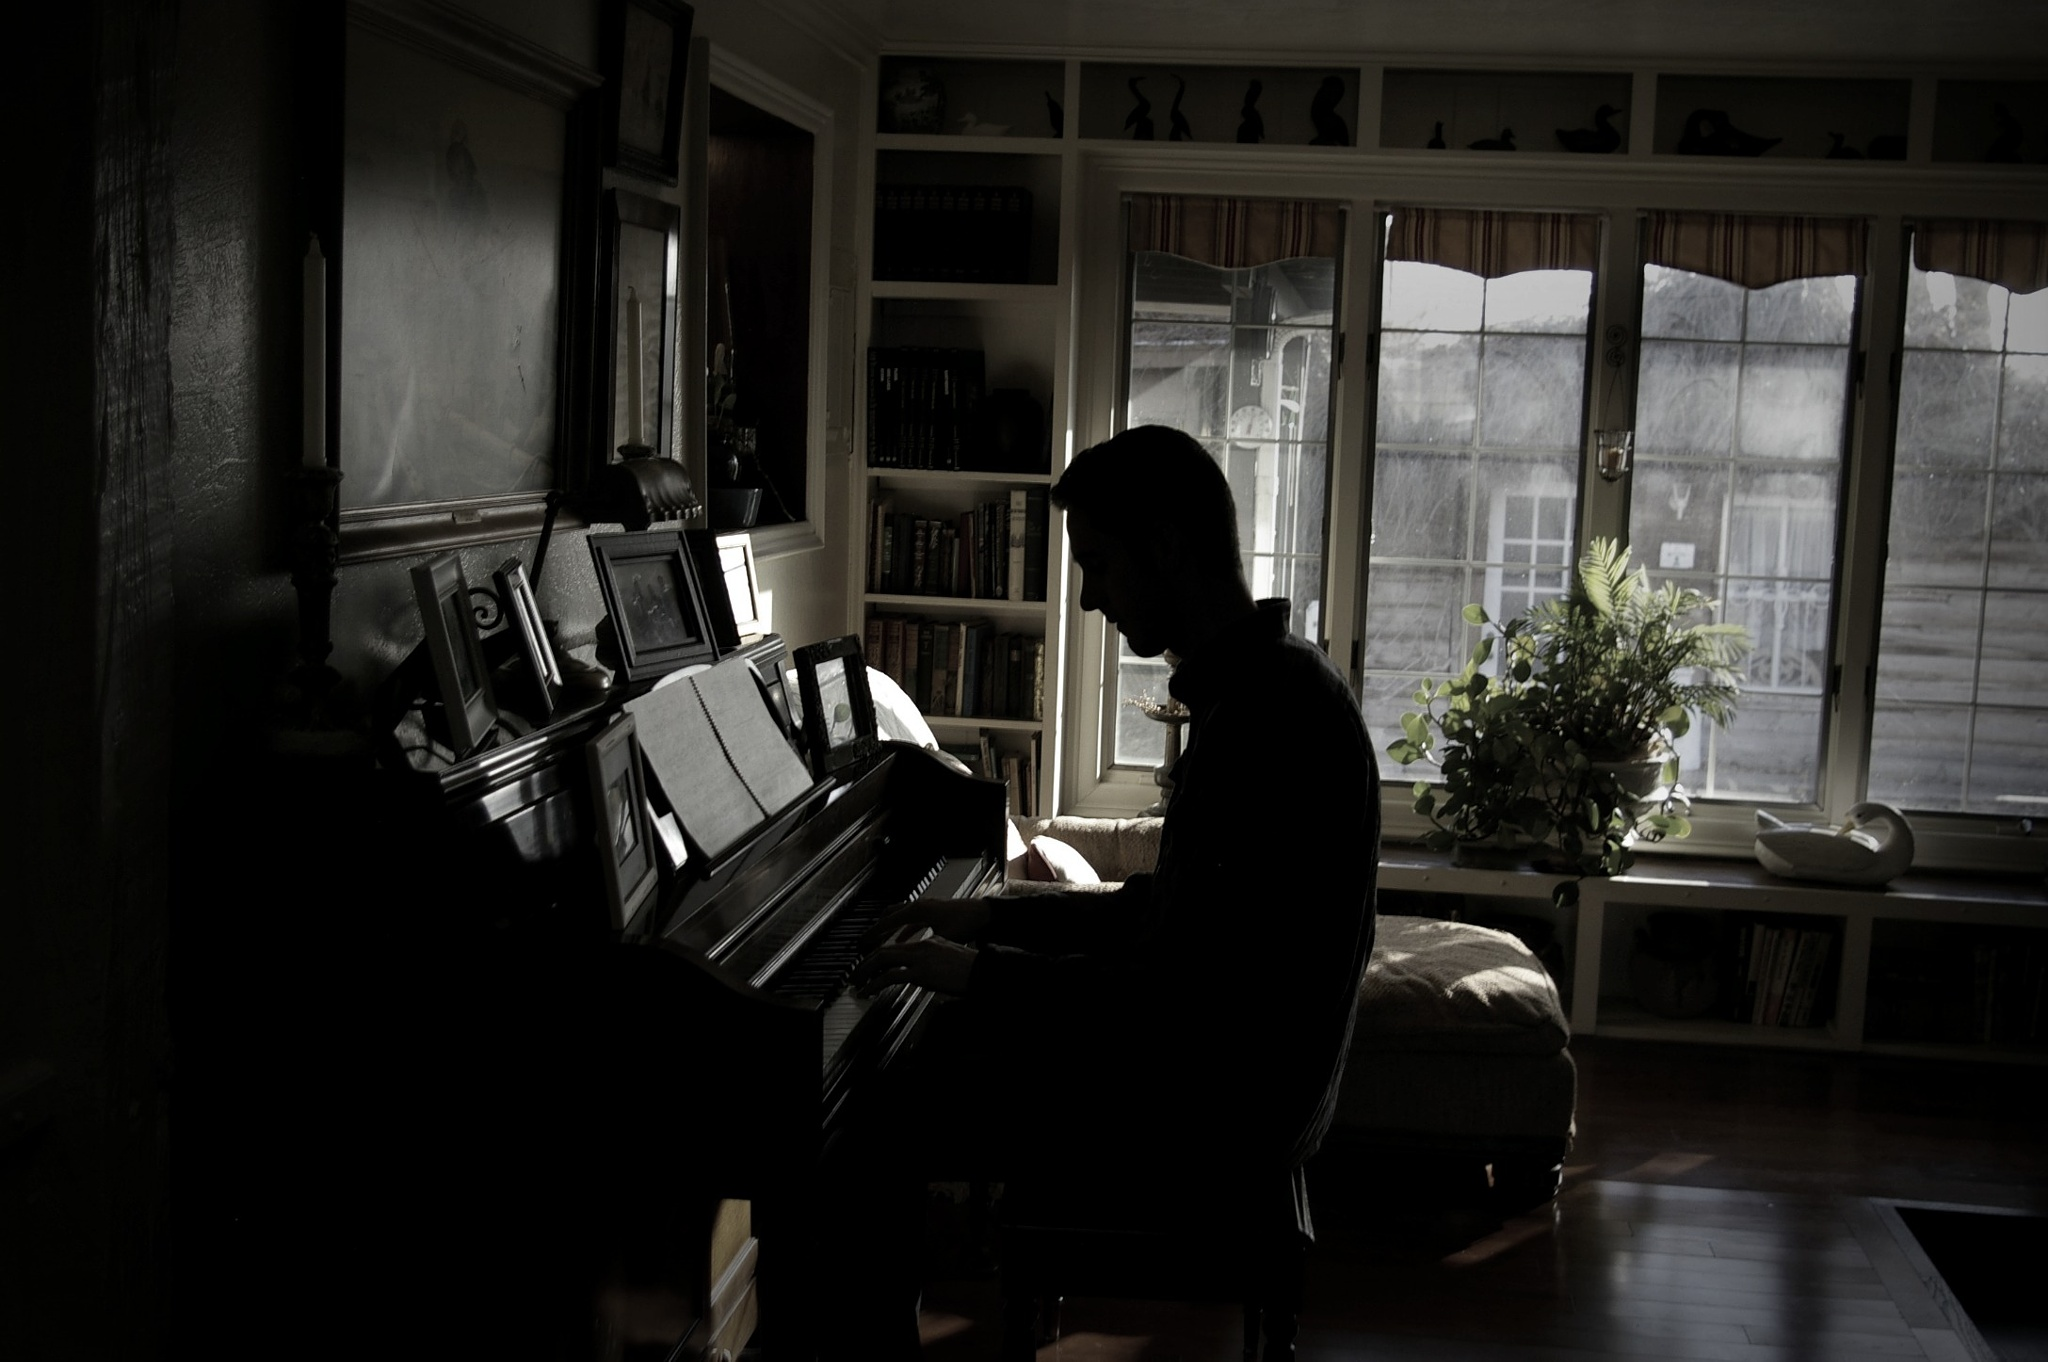 Piano Player by Rashelle